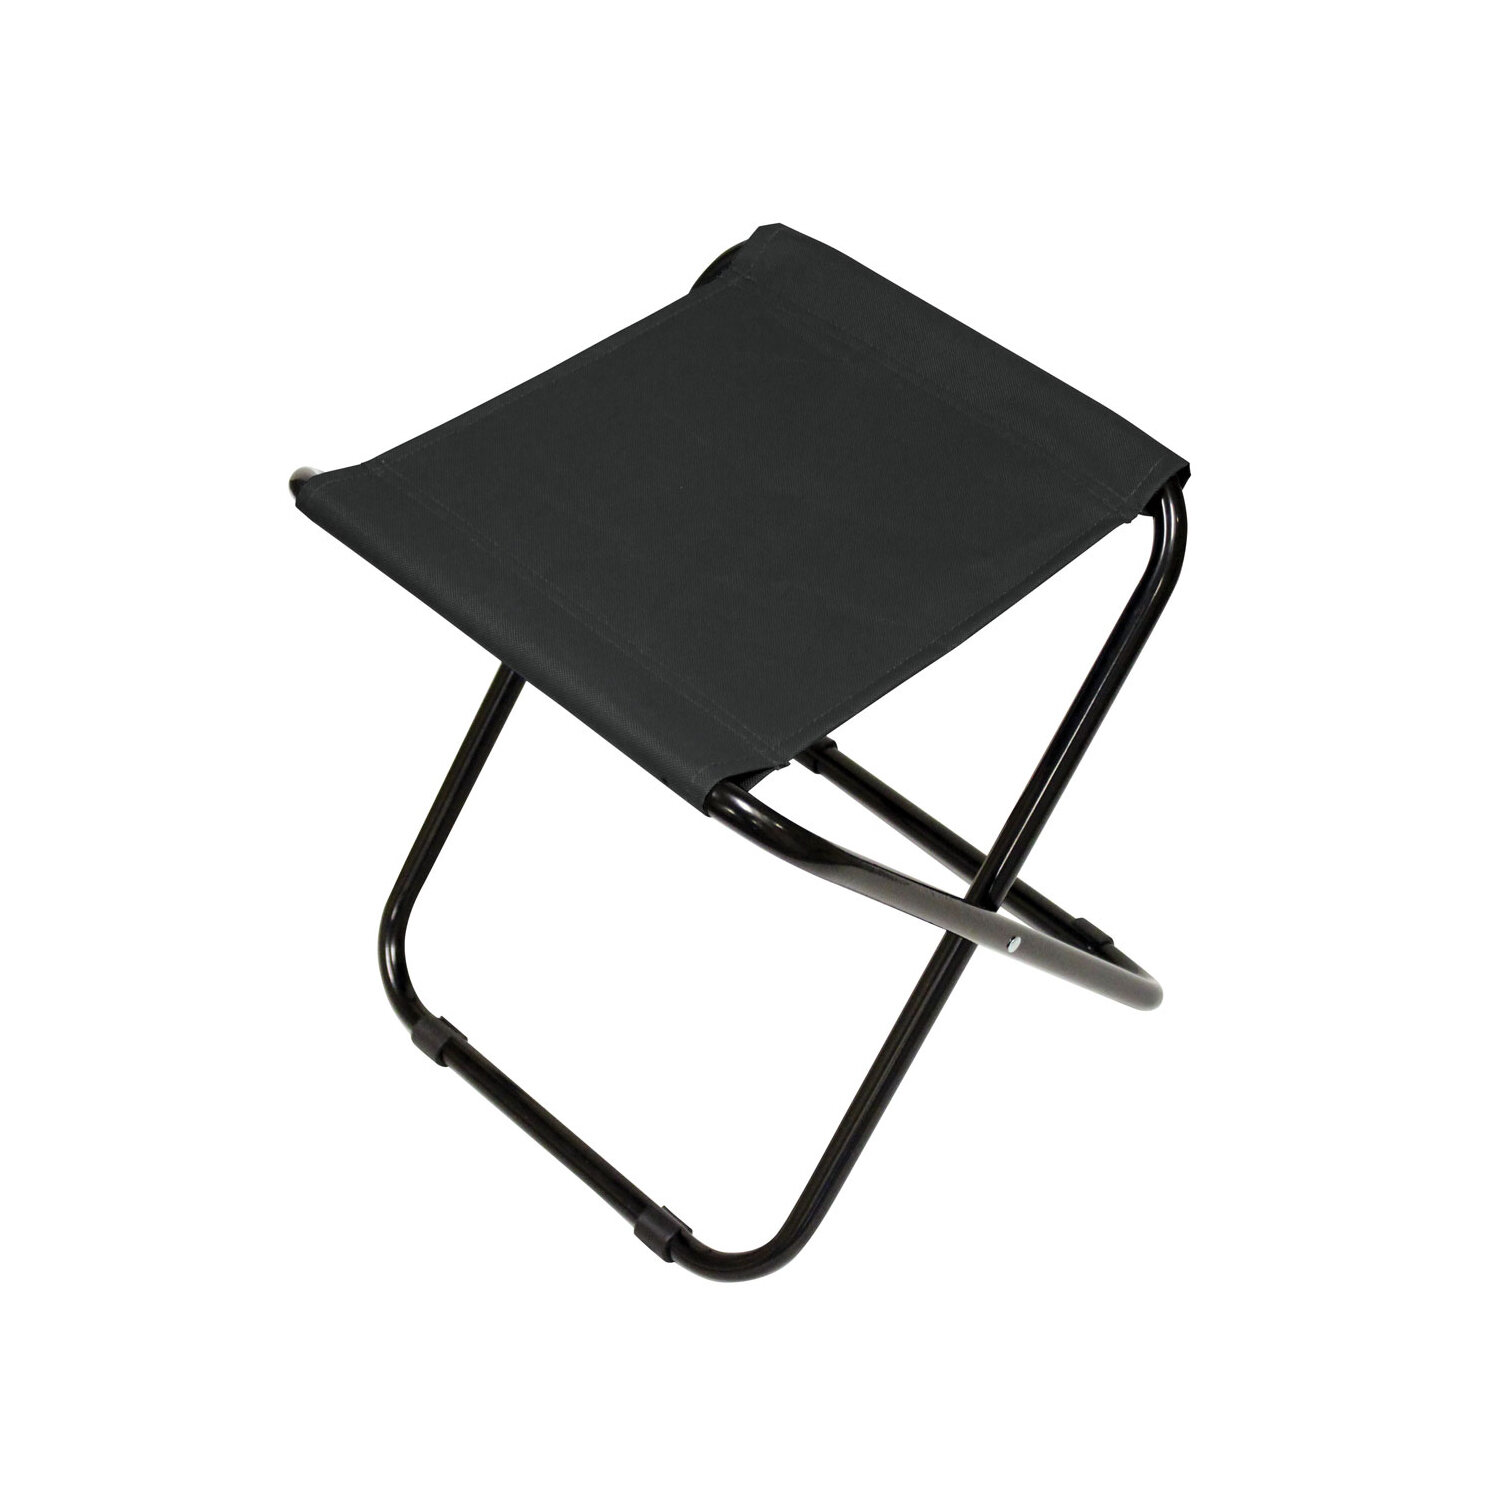 Marvelous Camping Stool Camping Furniture Nuovoscatolificiodeltirreno It Caraccident5 Cool Chair Designs And Ideas Caraccident5Info